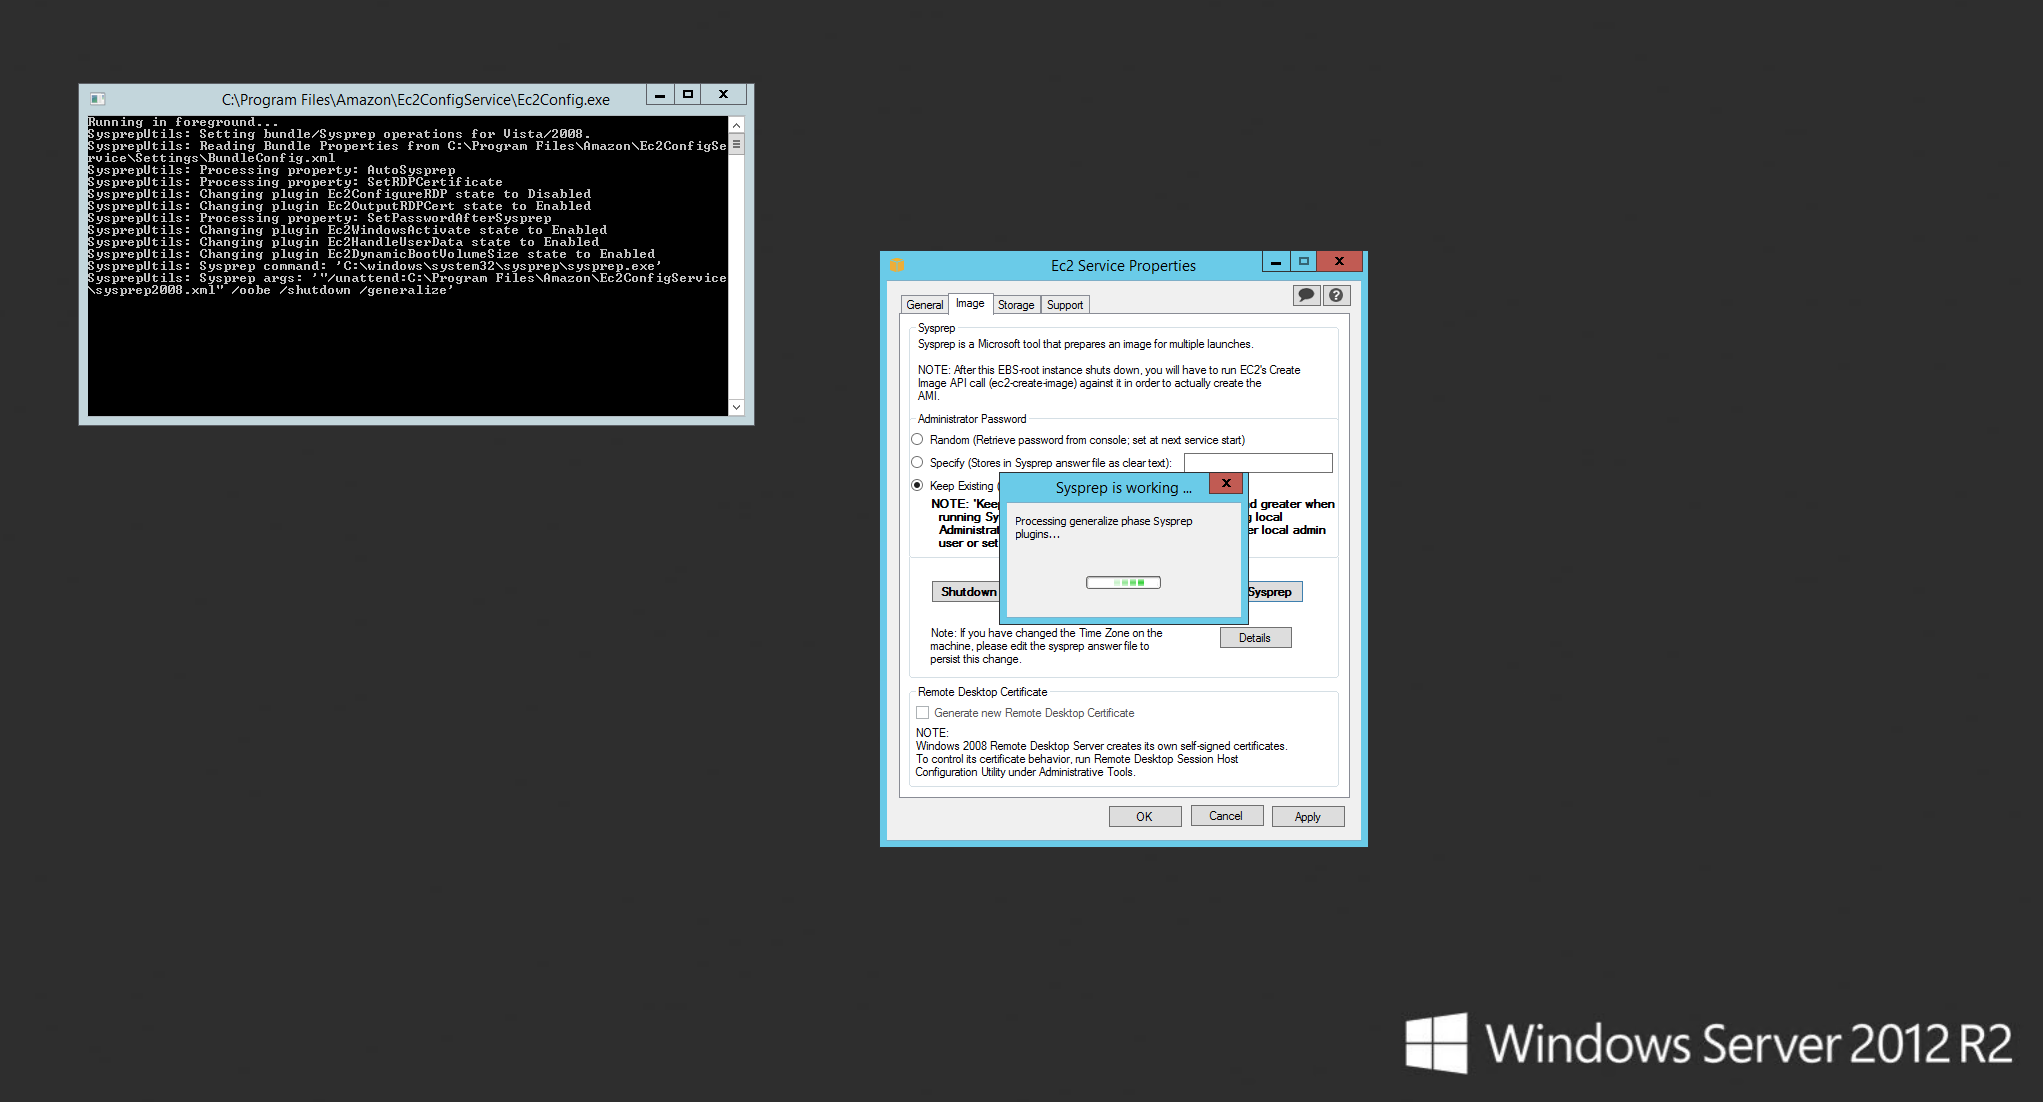 Windows Server 2012 R2 Sysprep with EC2Config Service - beta